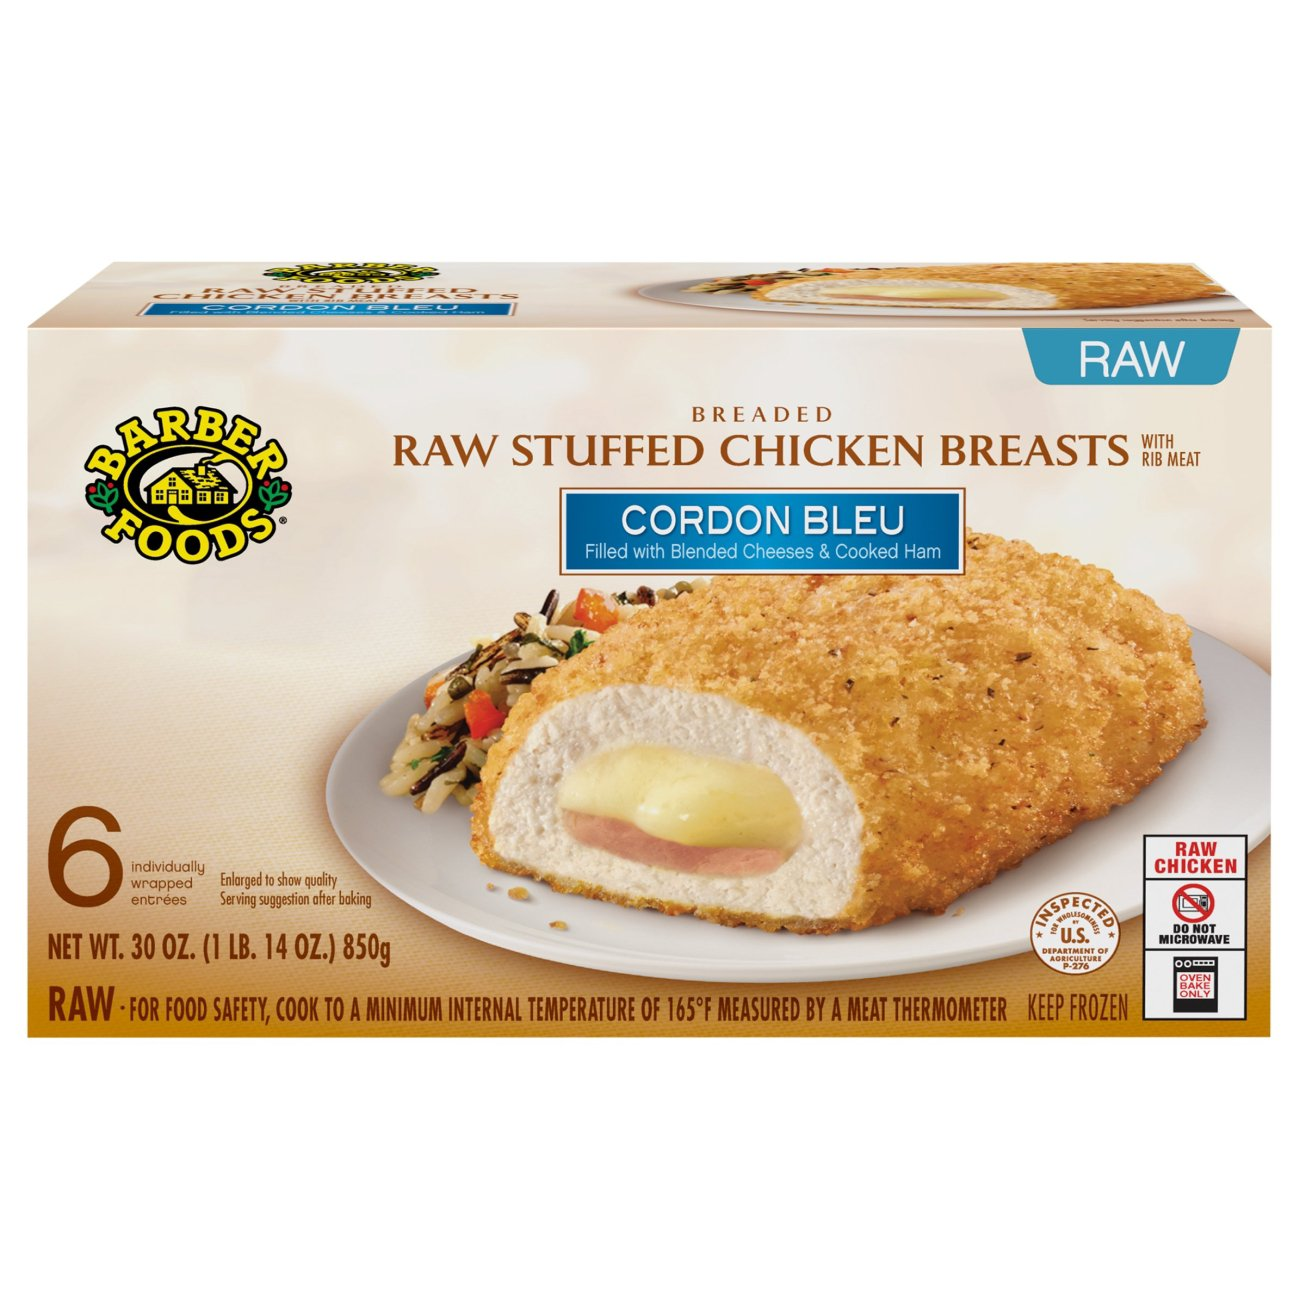 Barber Foods Breaded Raw Cordon Bleu Stuffed Chicken Breasts Shop Chicken At H E B